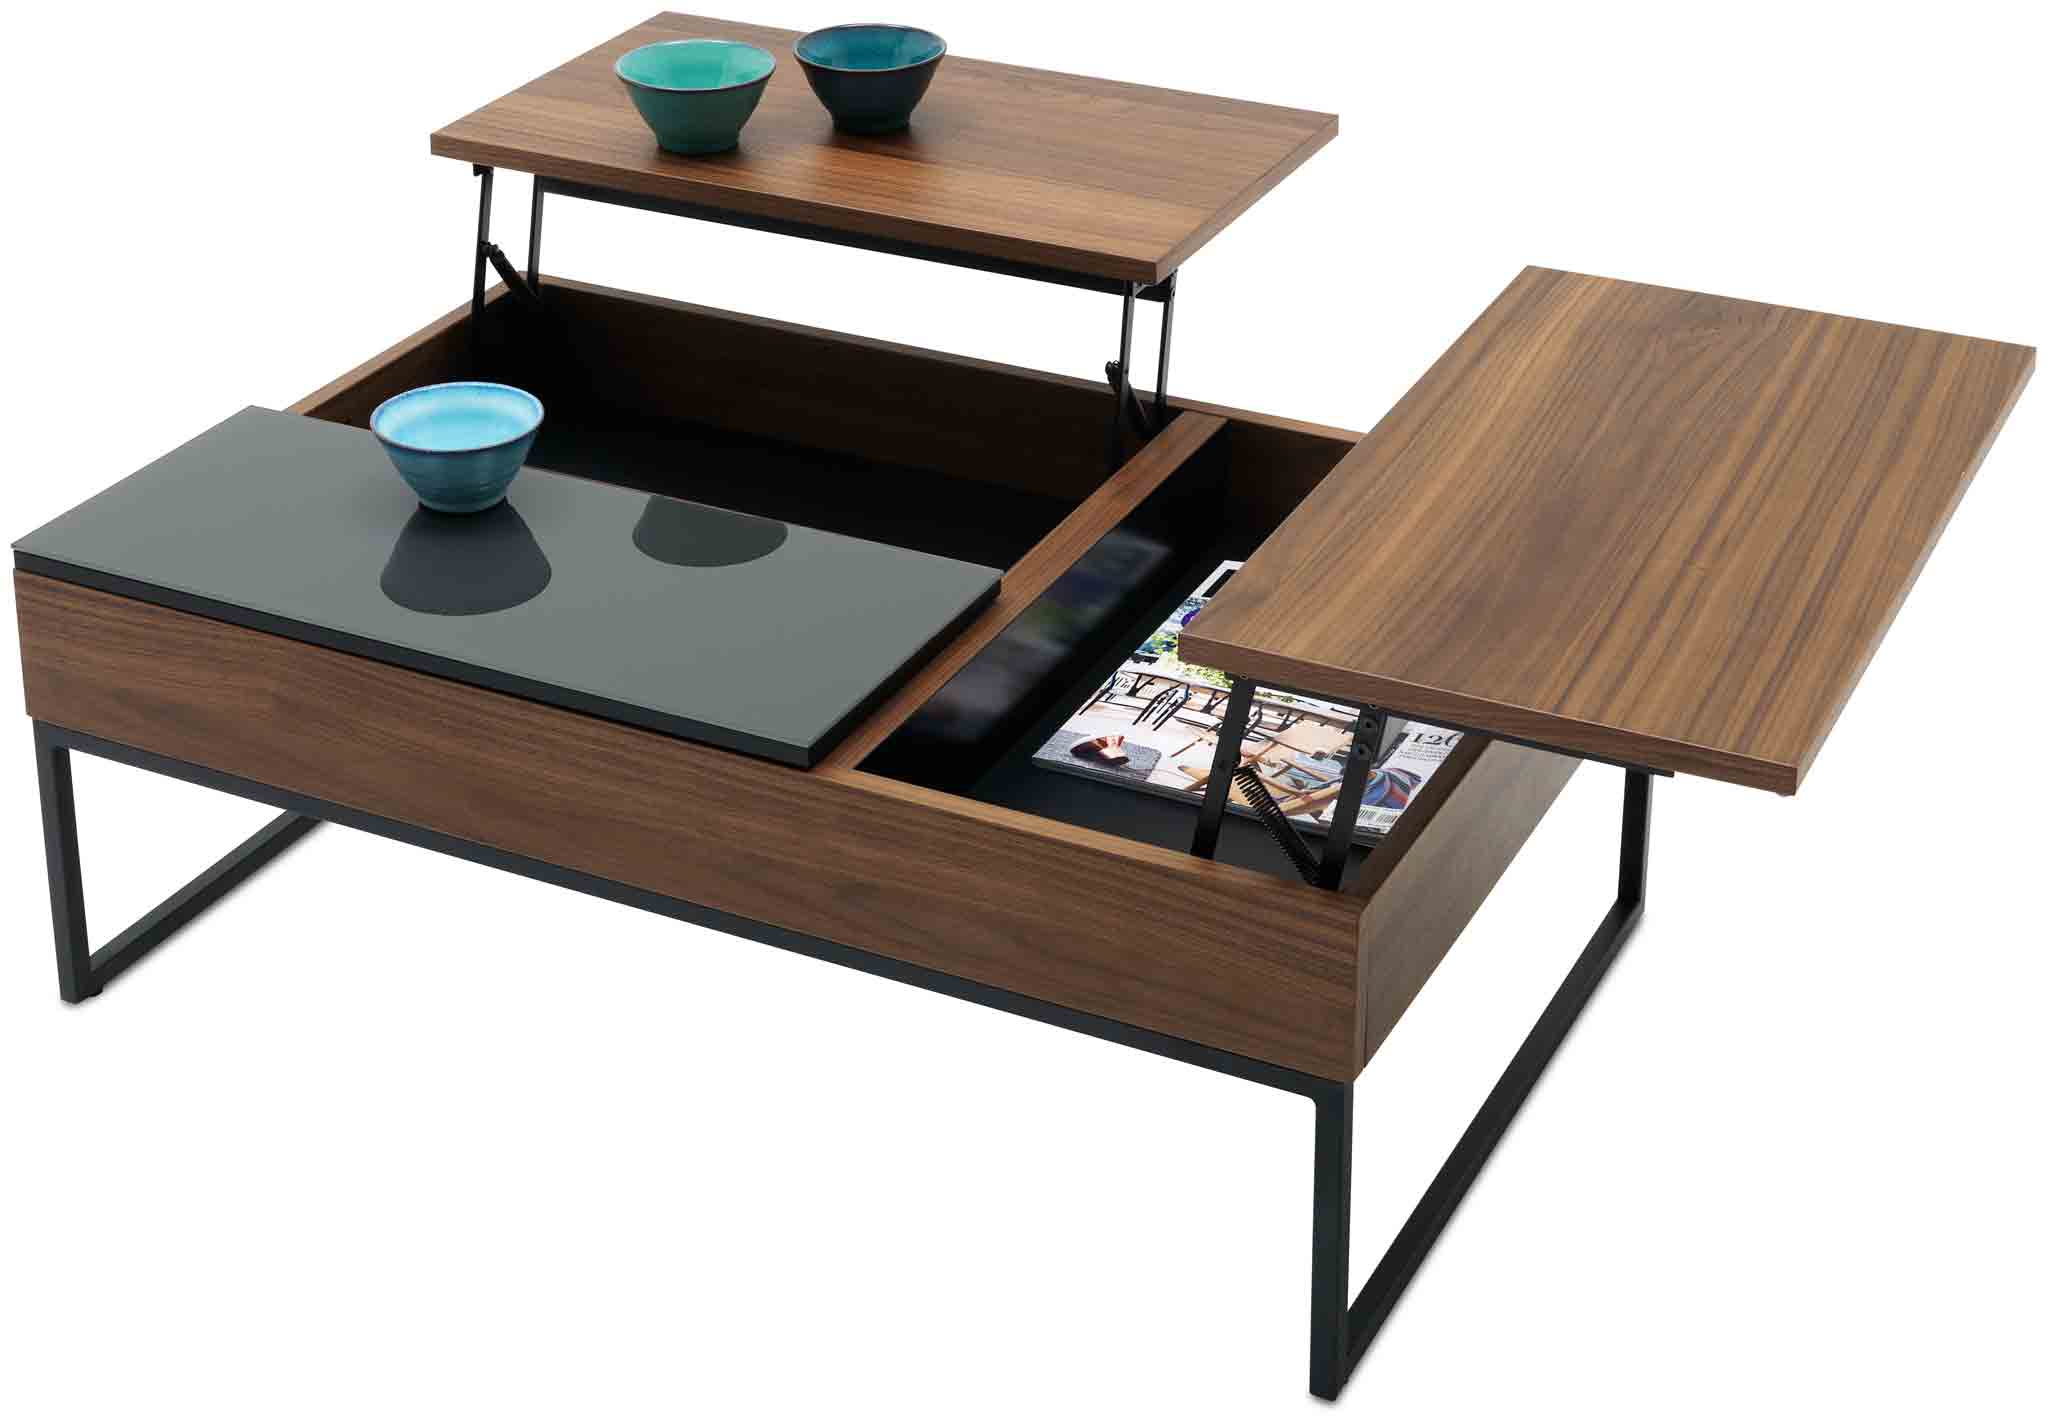 Boconcept Coffee Table Quot Chiva Quot Couchtisch Von Boconcept Produkttrends